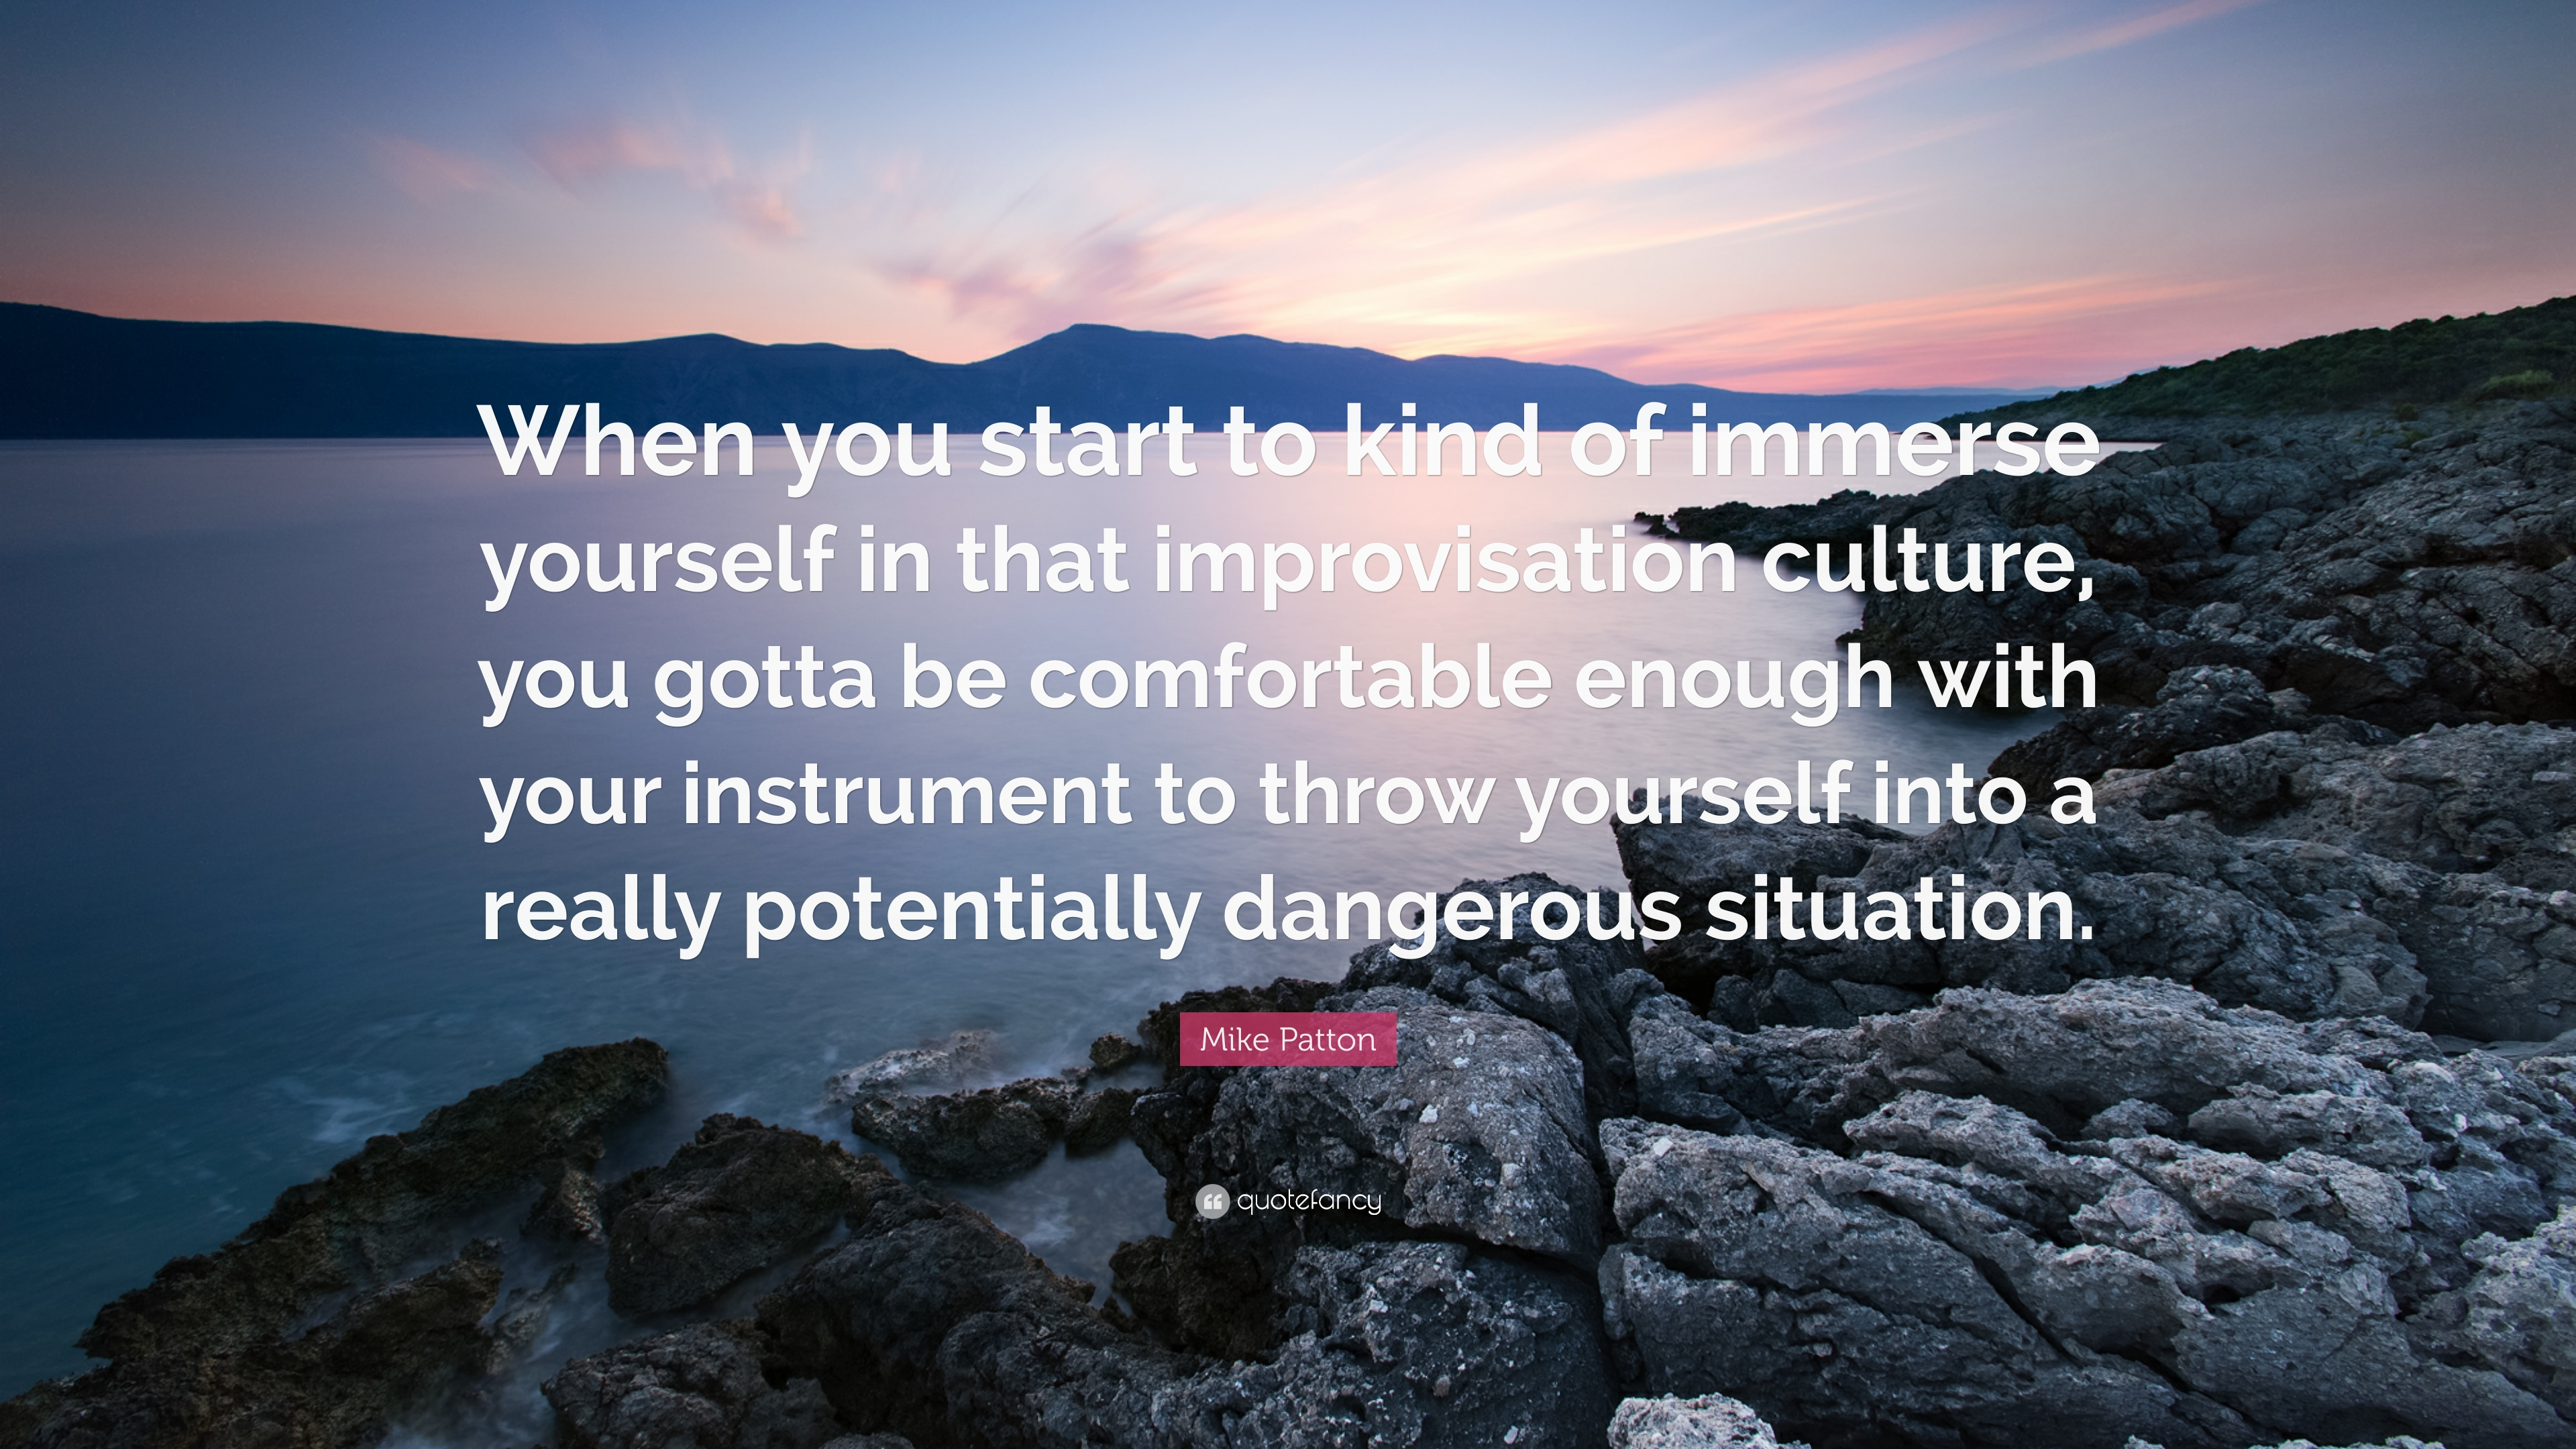 Mike patton quote when you start to kind of immerse yourself in mike patton quote when you start to kind of immerse yourself in that improvisation solutioingenieria Images